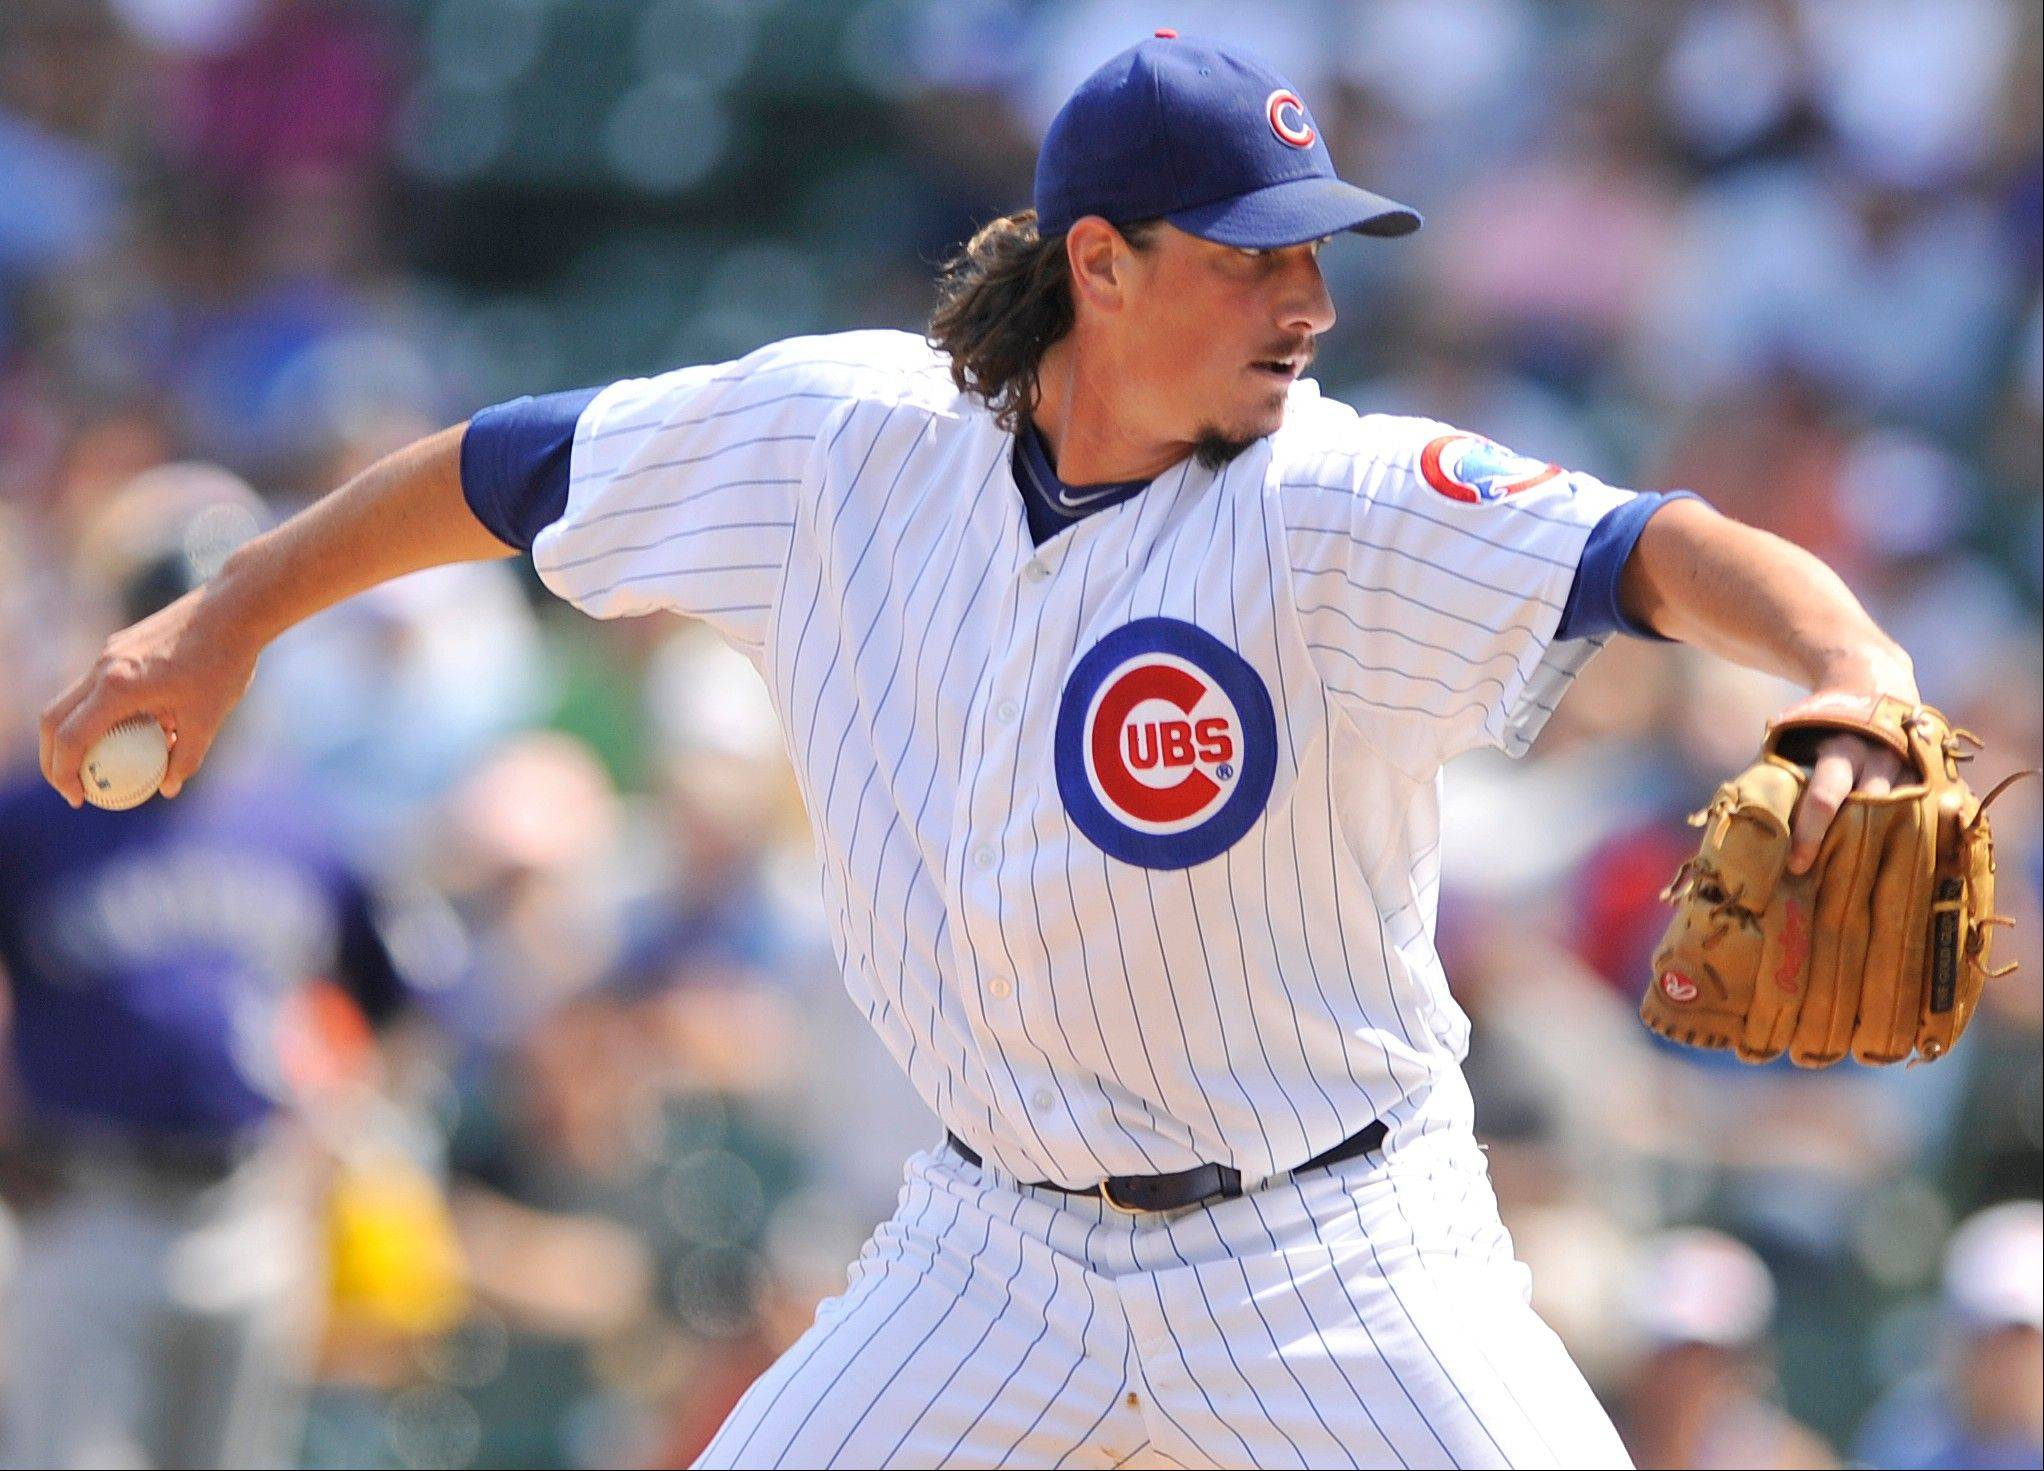 Chicago Cubs starter Jeff Samardzija delivers a pitch against the Colorado Rockies in the first inning during a baseball game in Chicago, Friday, Aug. 24, 2012. (AP Photo/Paul Beaty)